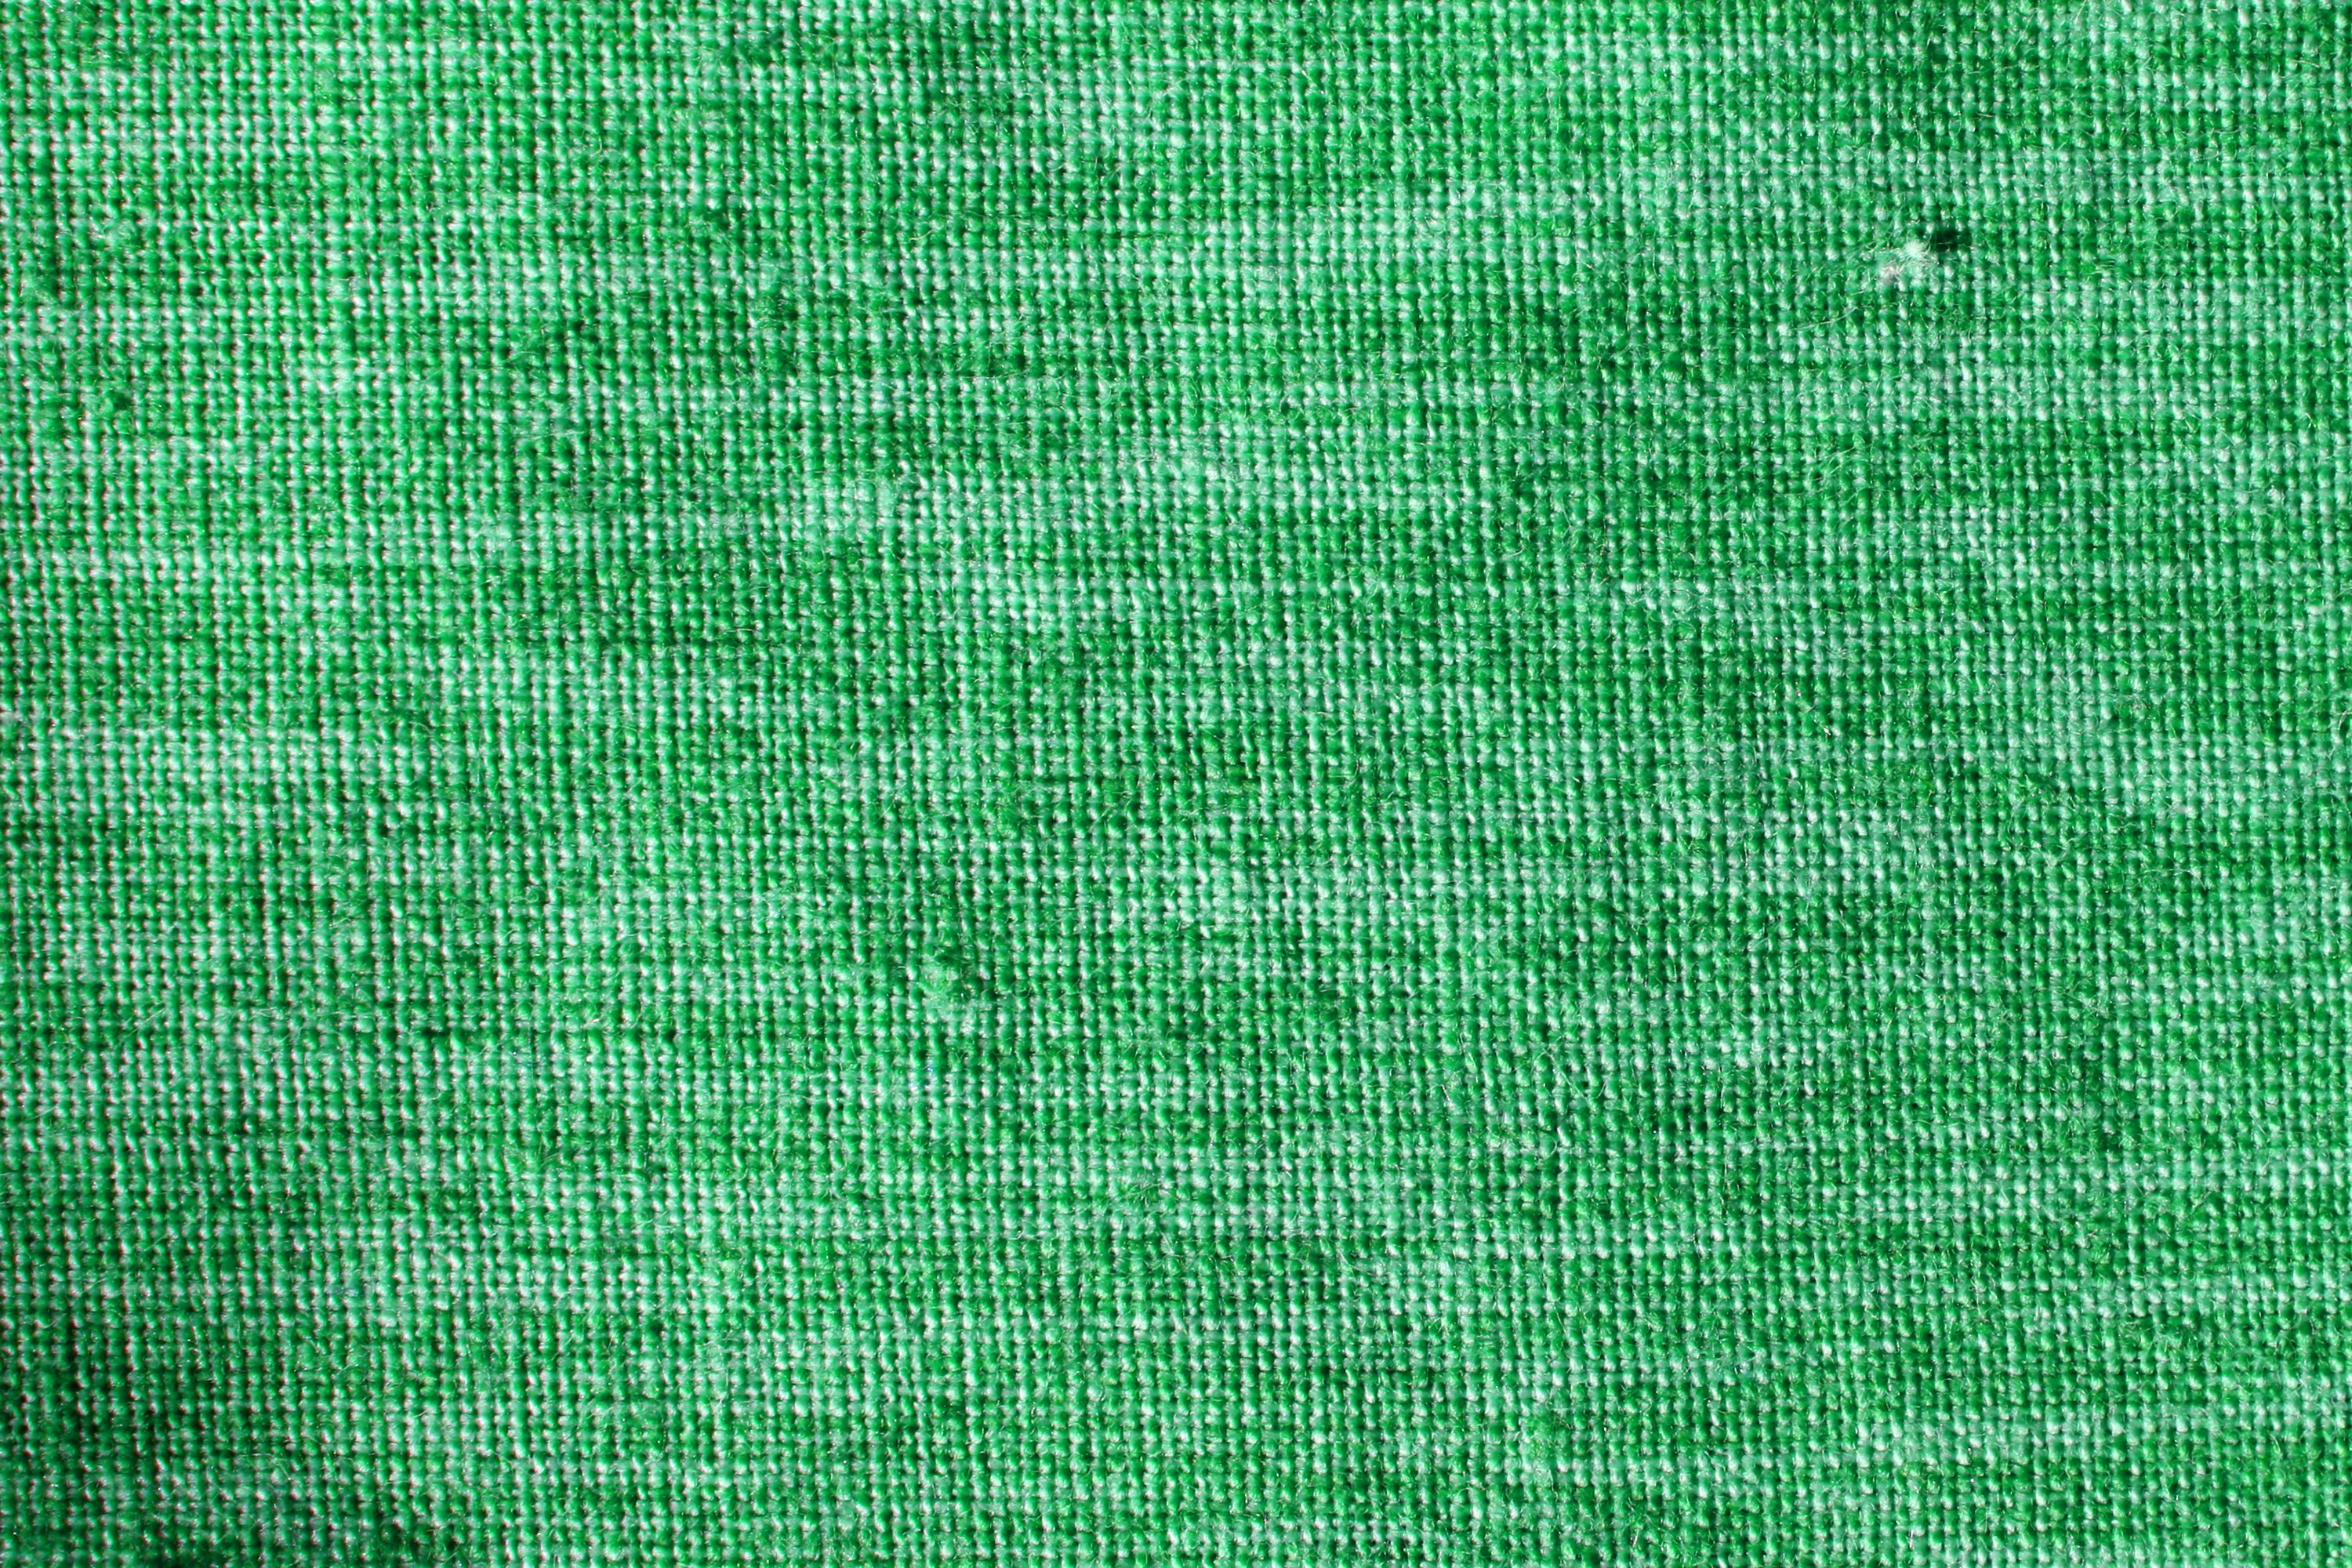 buckling analysis of plain knitted fabric Buckling behaviour was  warp and weft knitted fabric drape coefficients  jeddah et al proposed three regression models for predicting drape of plain and .